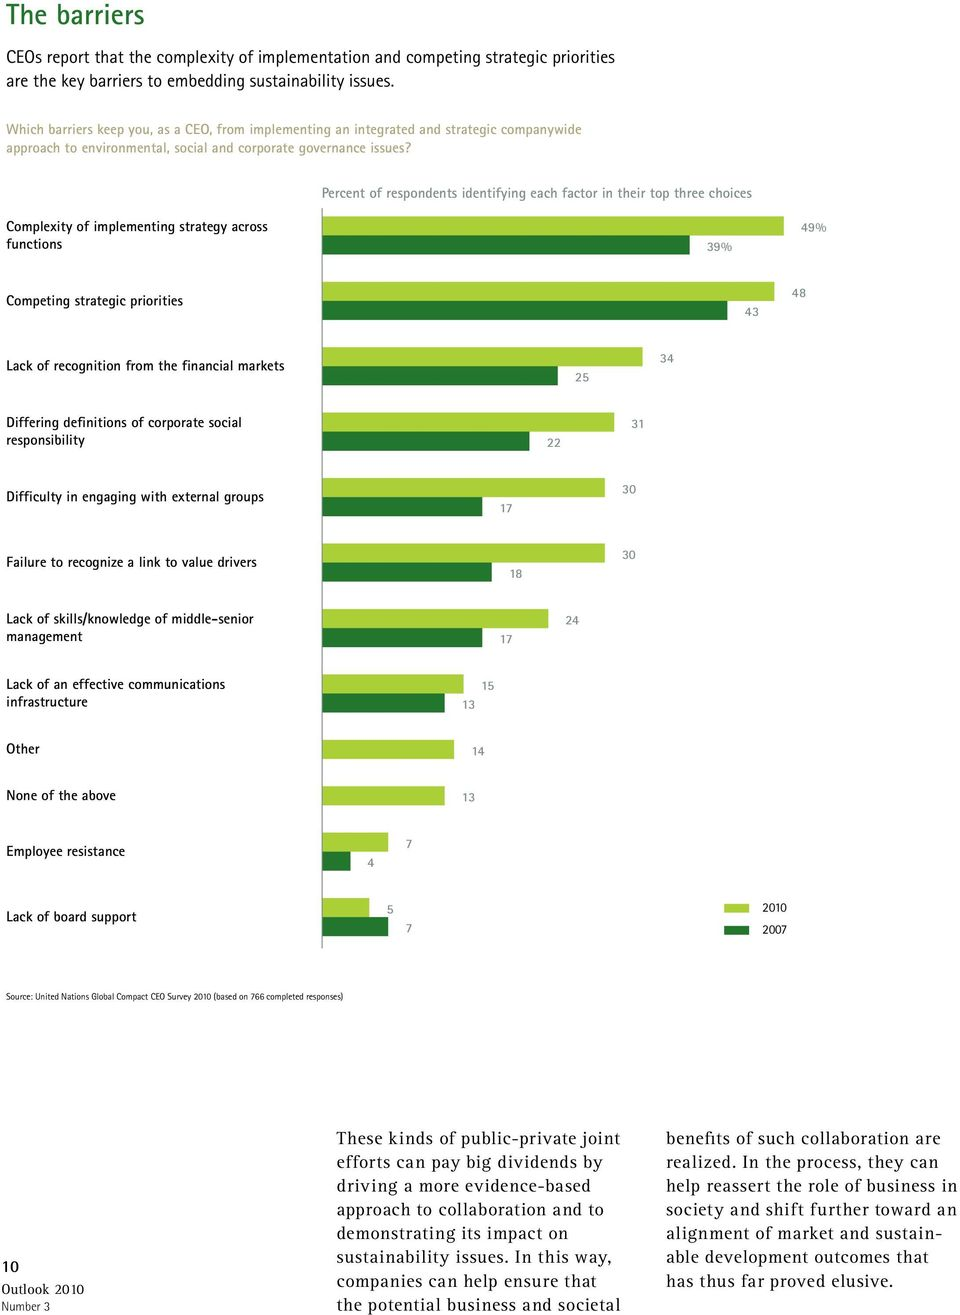 Percent of respondents identifying each factor in their top three choices Complexity of implementing strategy across functions 39% 49% Competing strategic priorities 43 48 Lack of recognition from